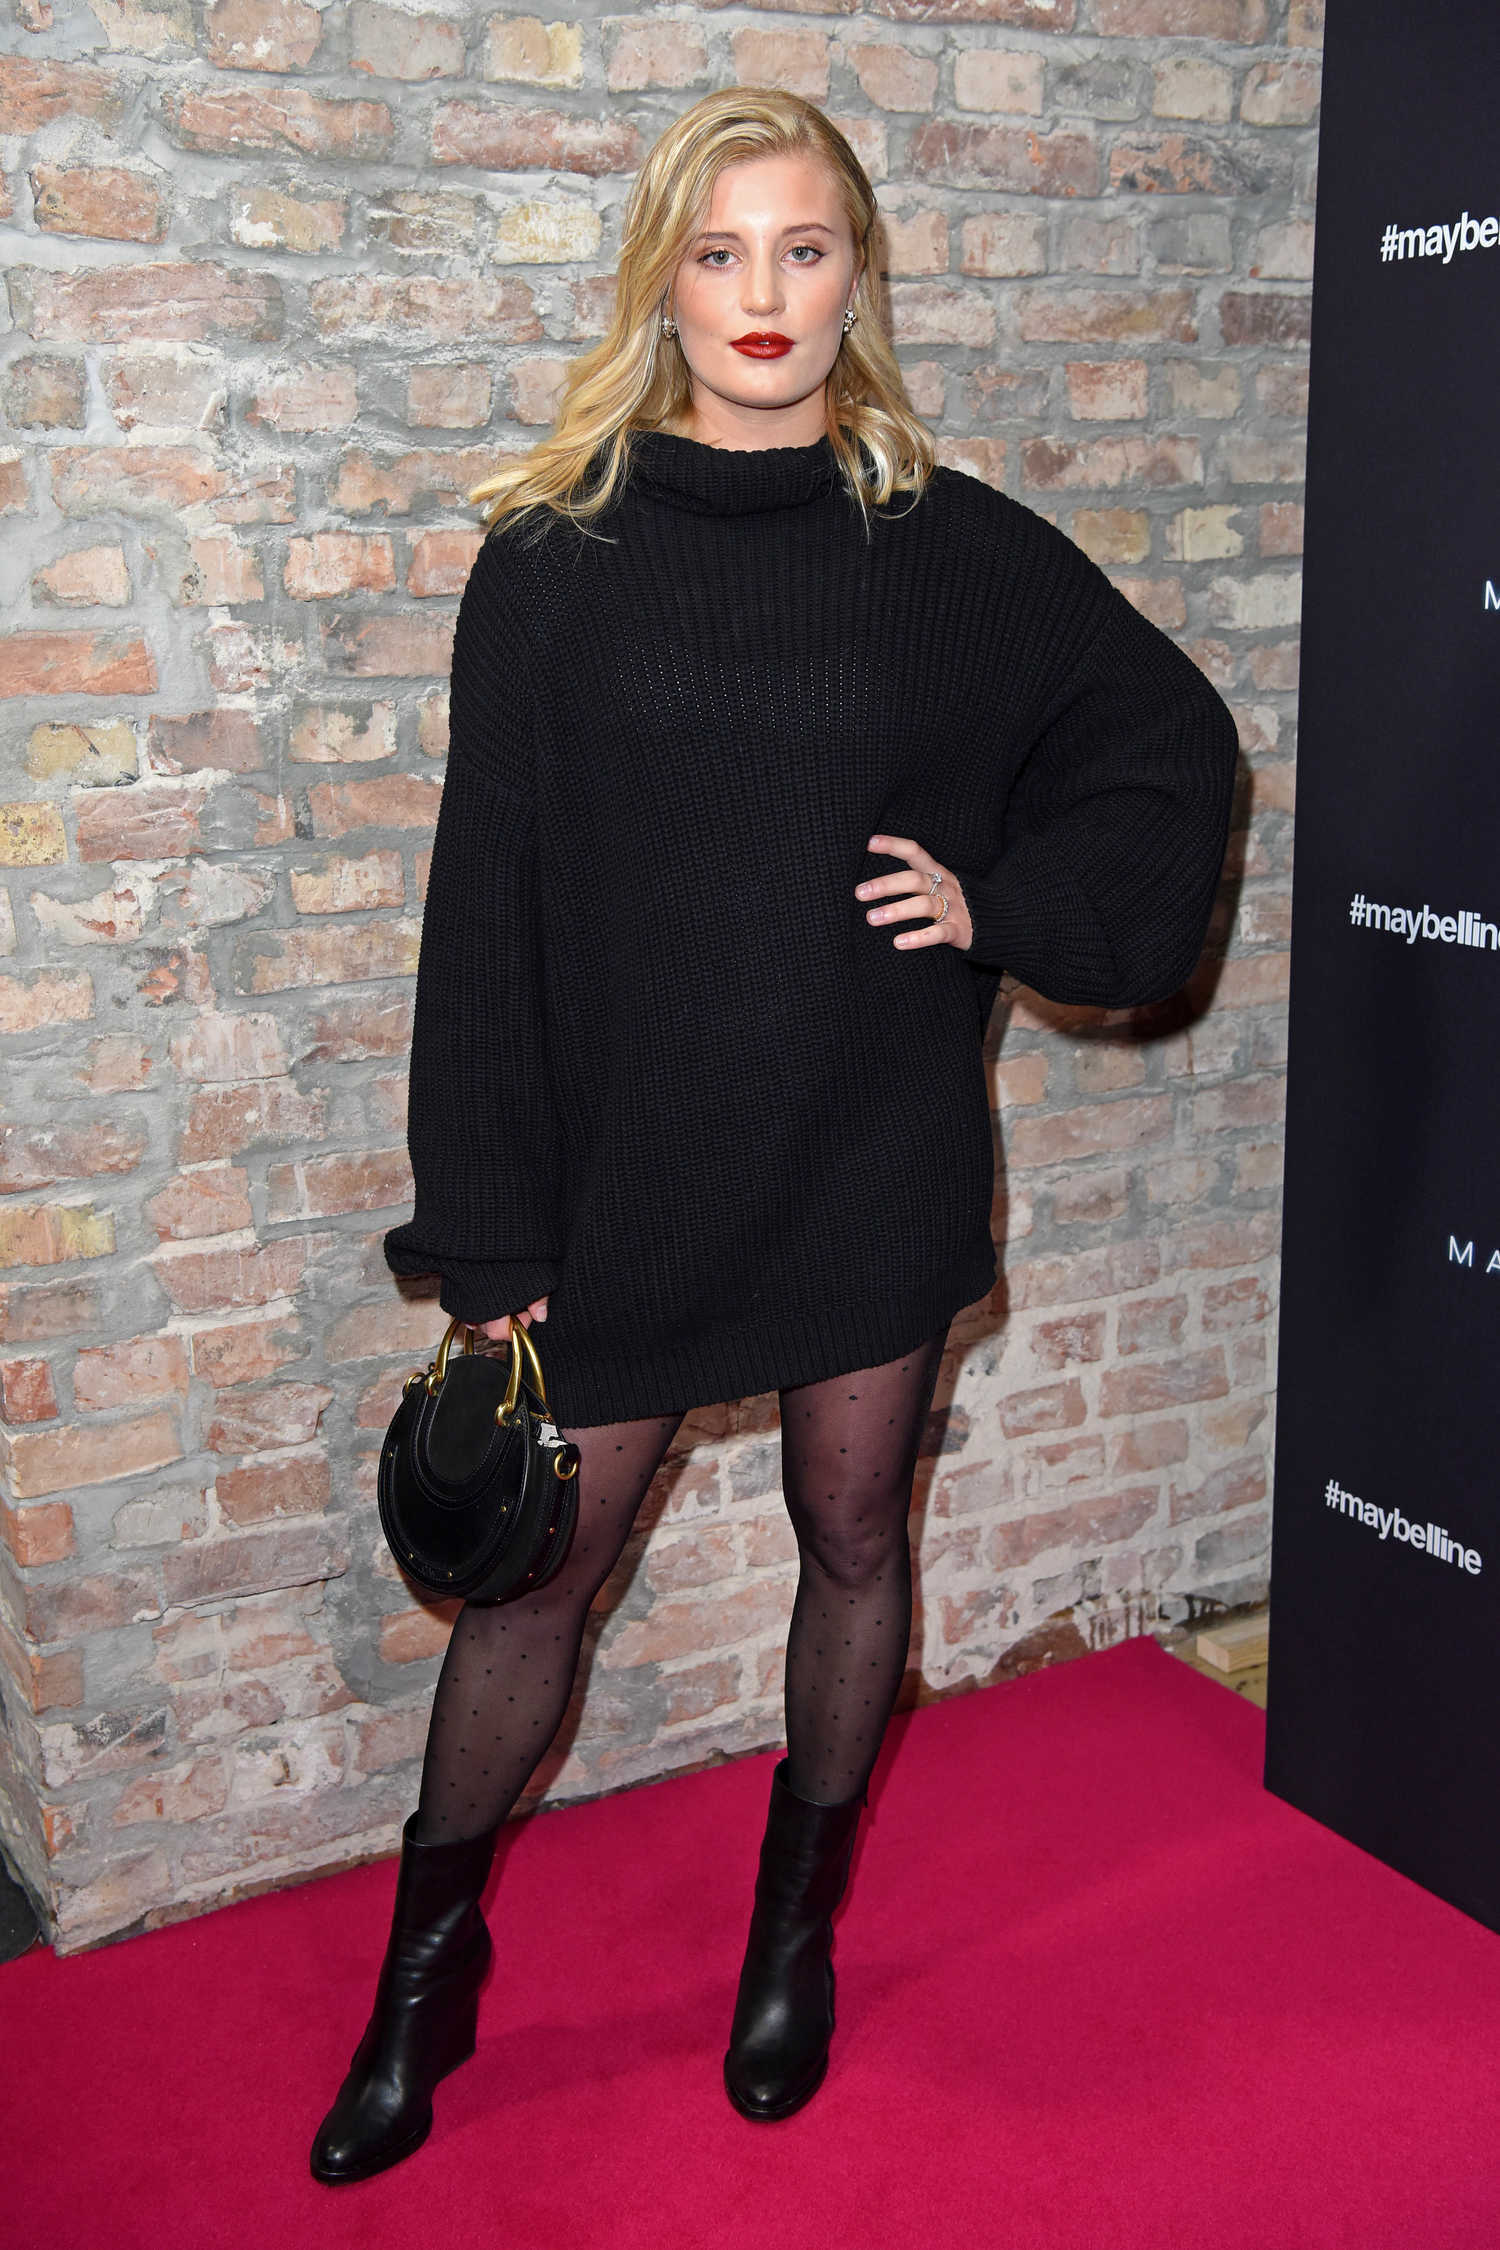 Luna Schweiger Attends Maybelline Fashion Show During The